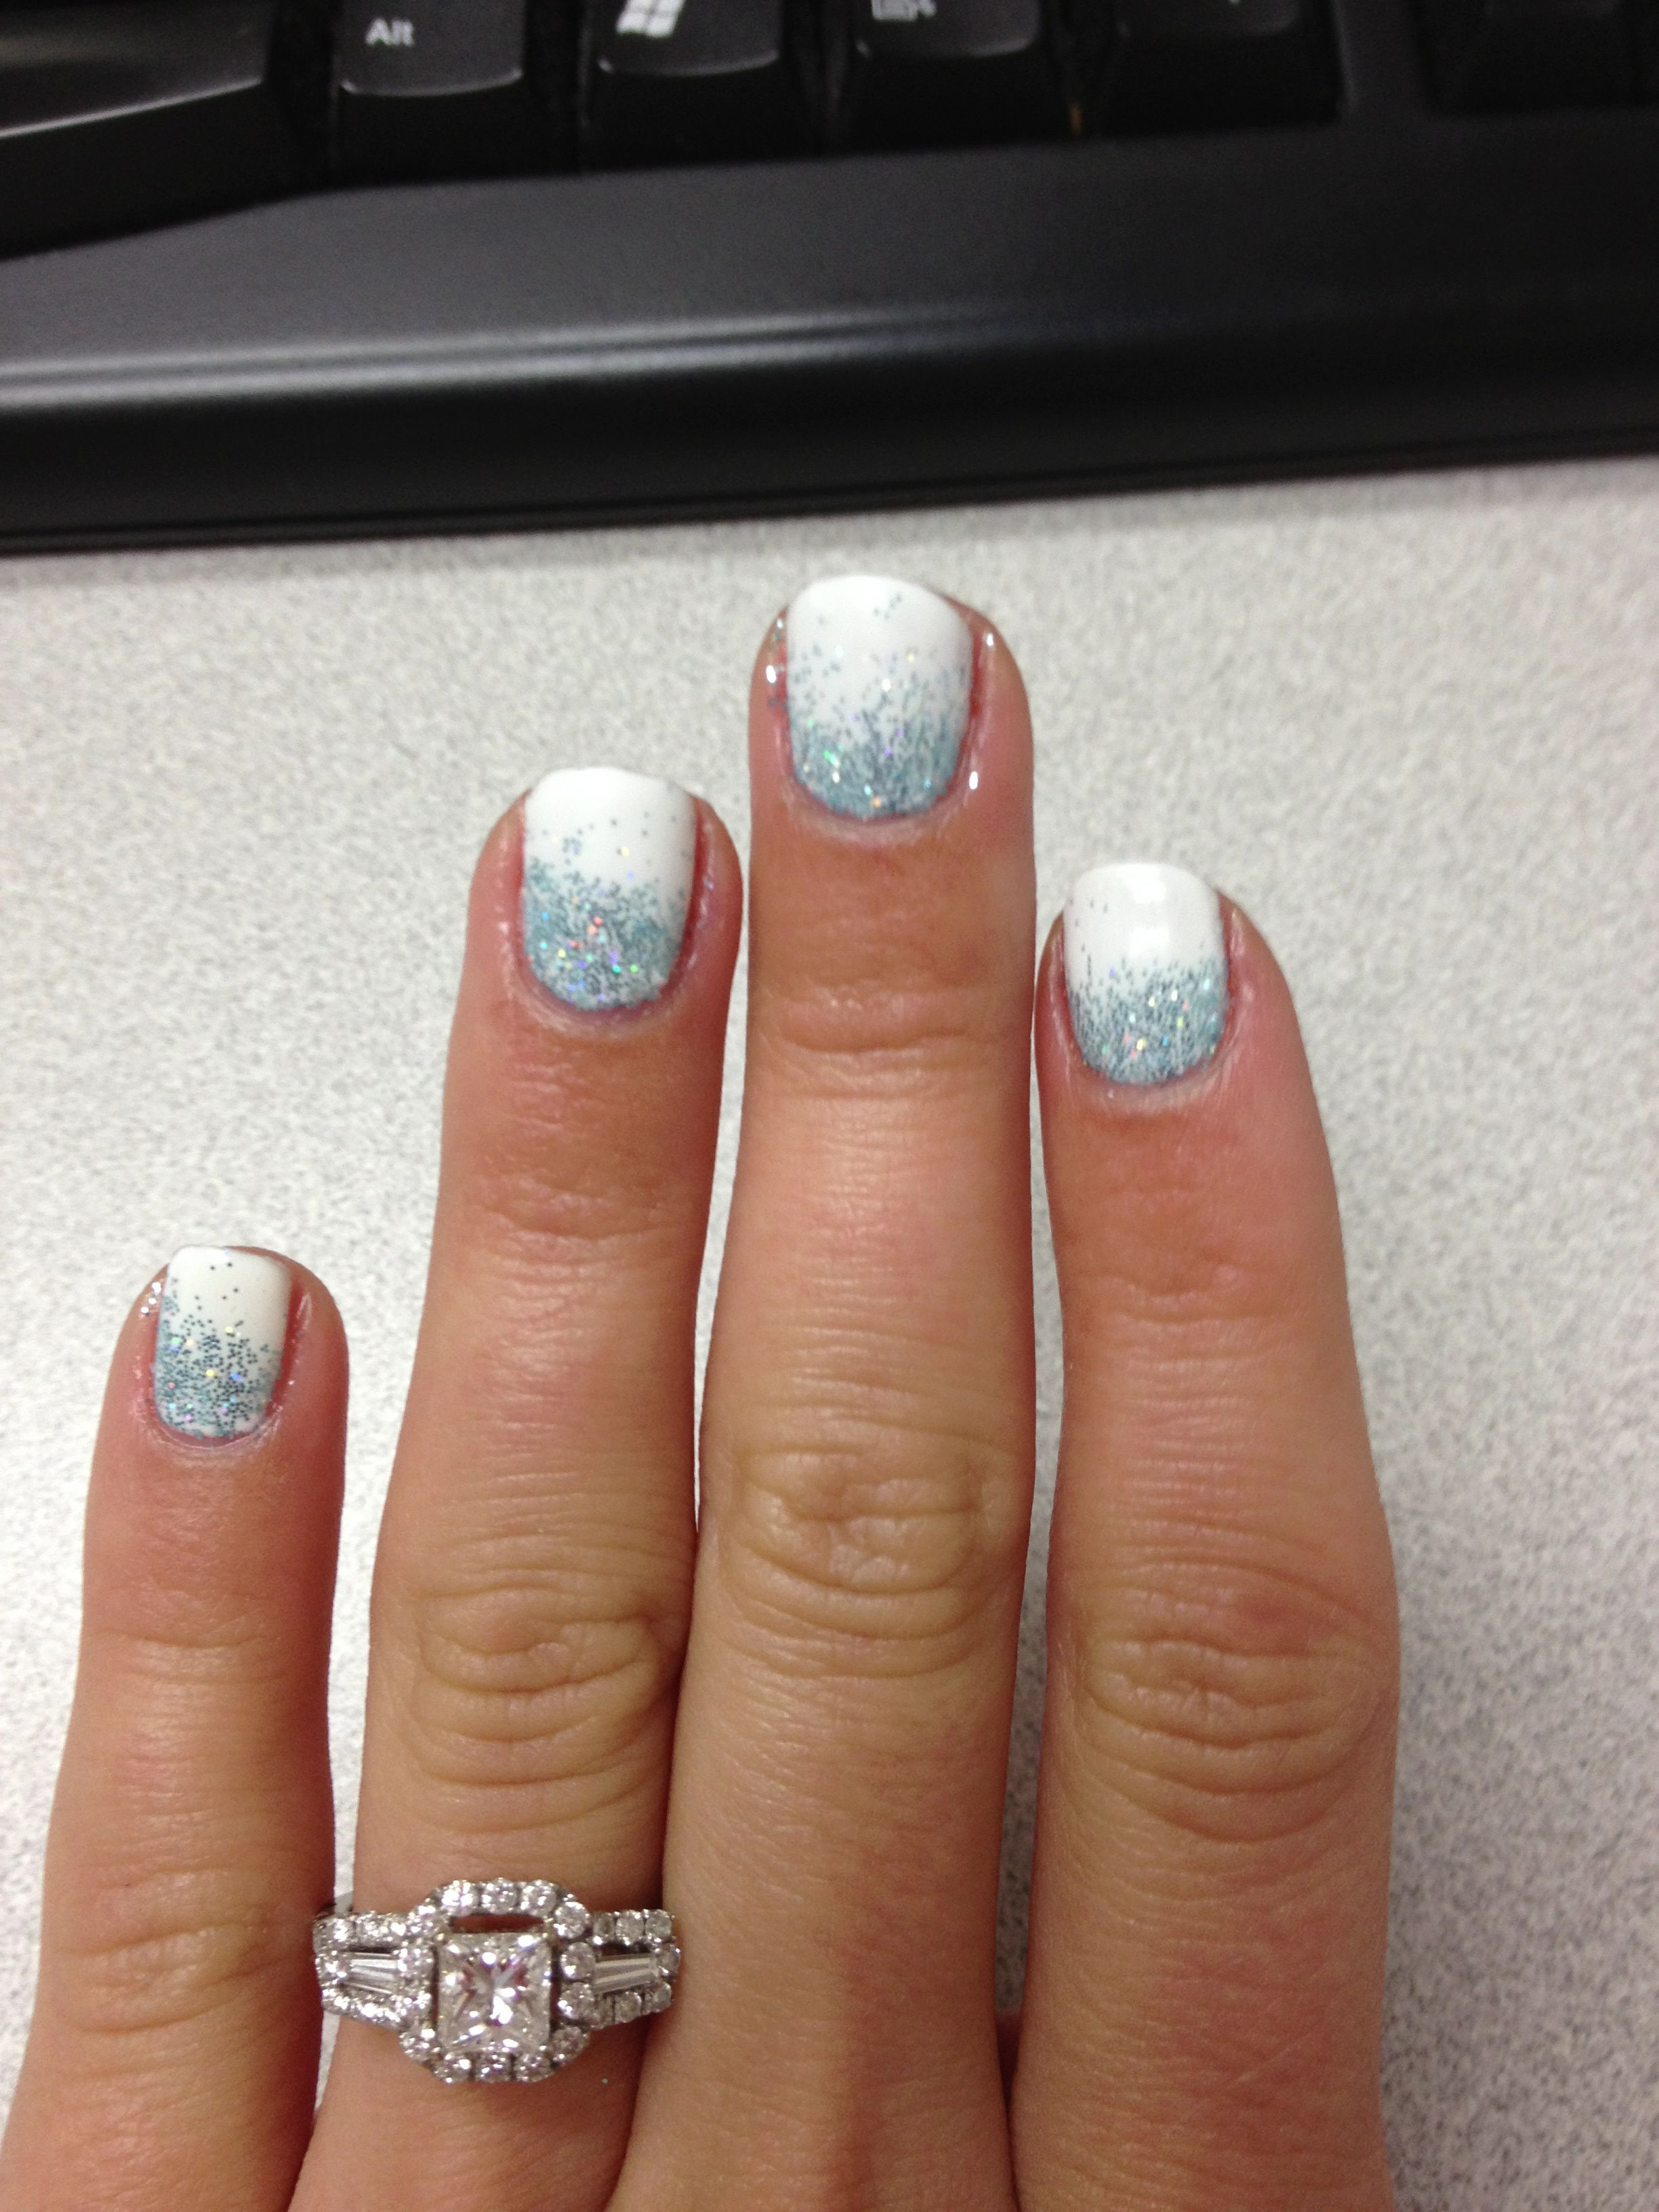 Pin By Amanda Sutton Conte On Nails Christmas Gel Nails White Shellac White Shellac Nails